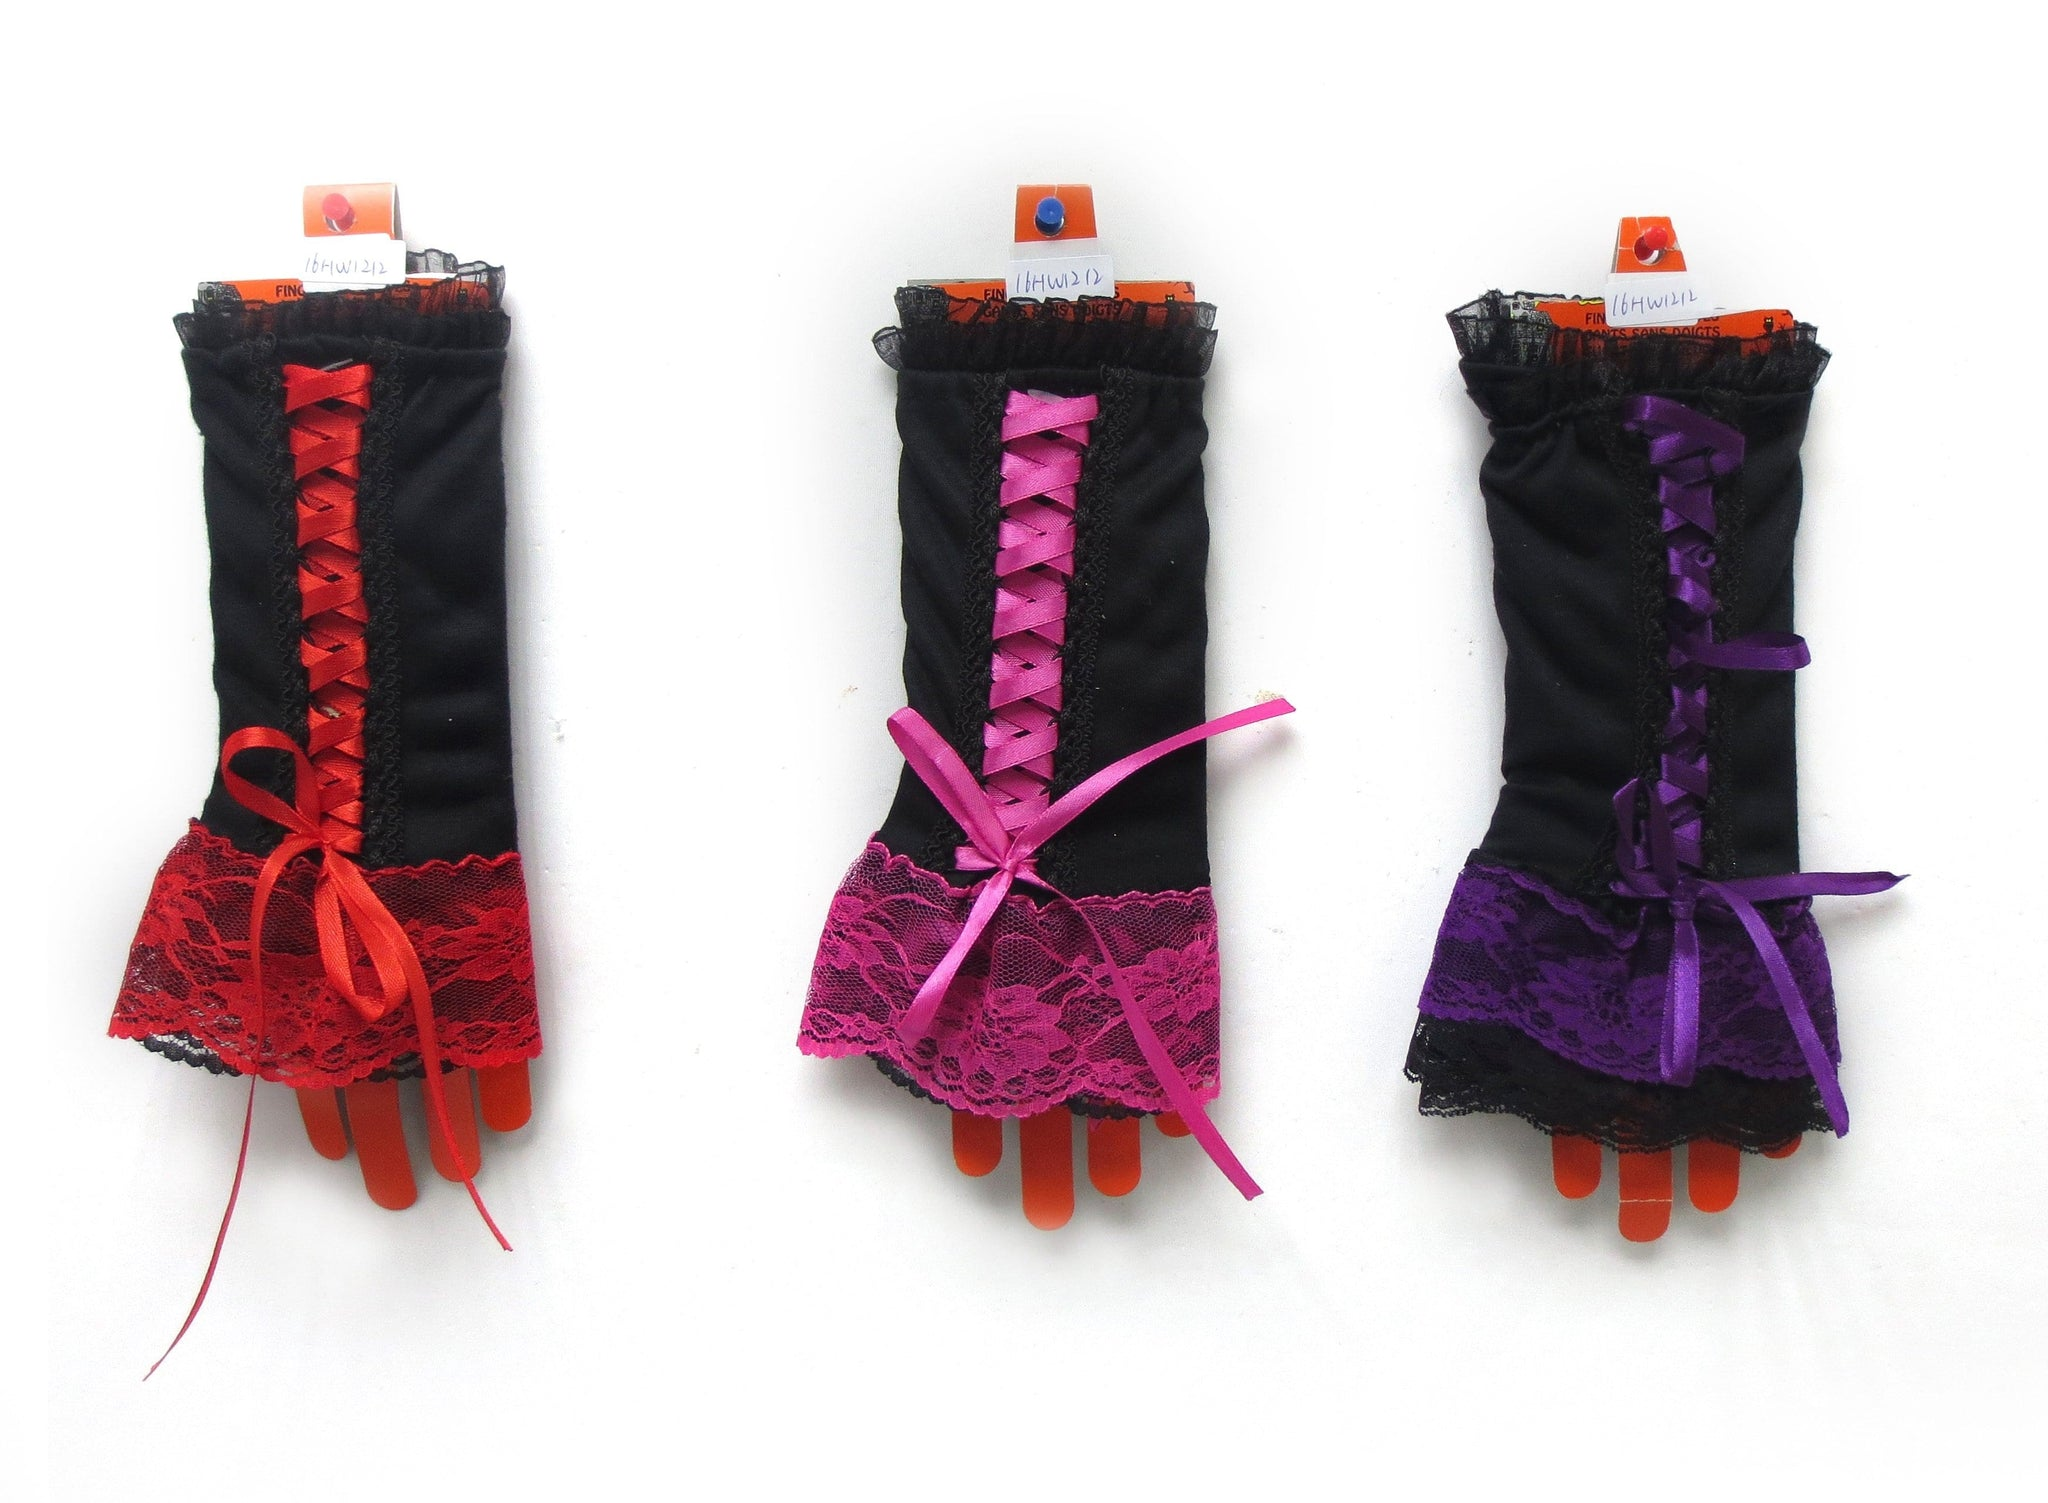 HALLOWEEN FINGERLESS CORSET GLOVES W/ LA - Christmas World